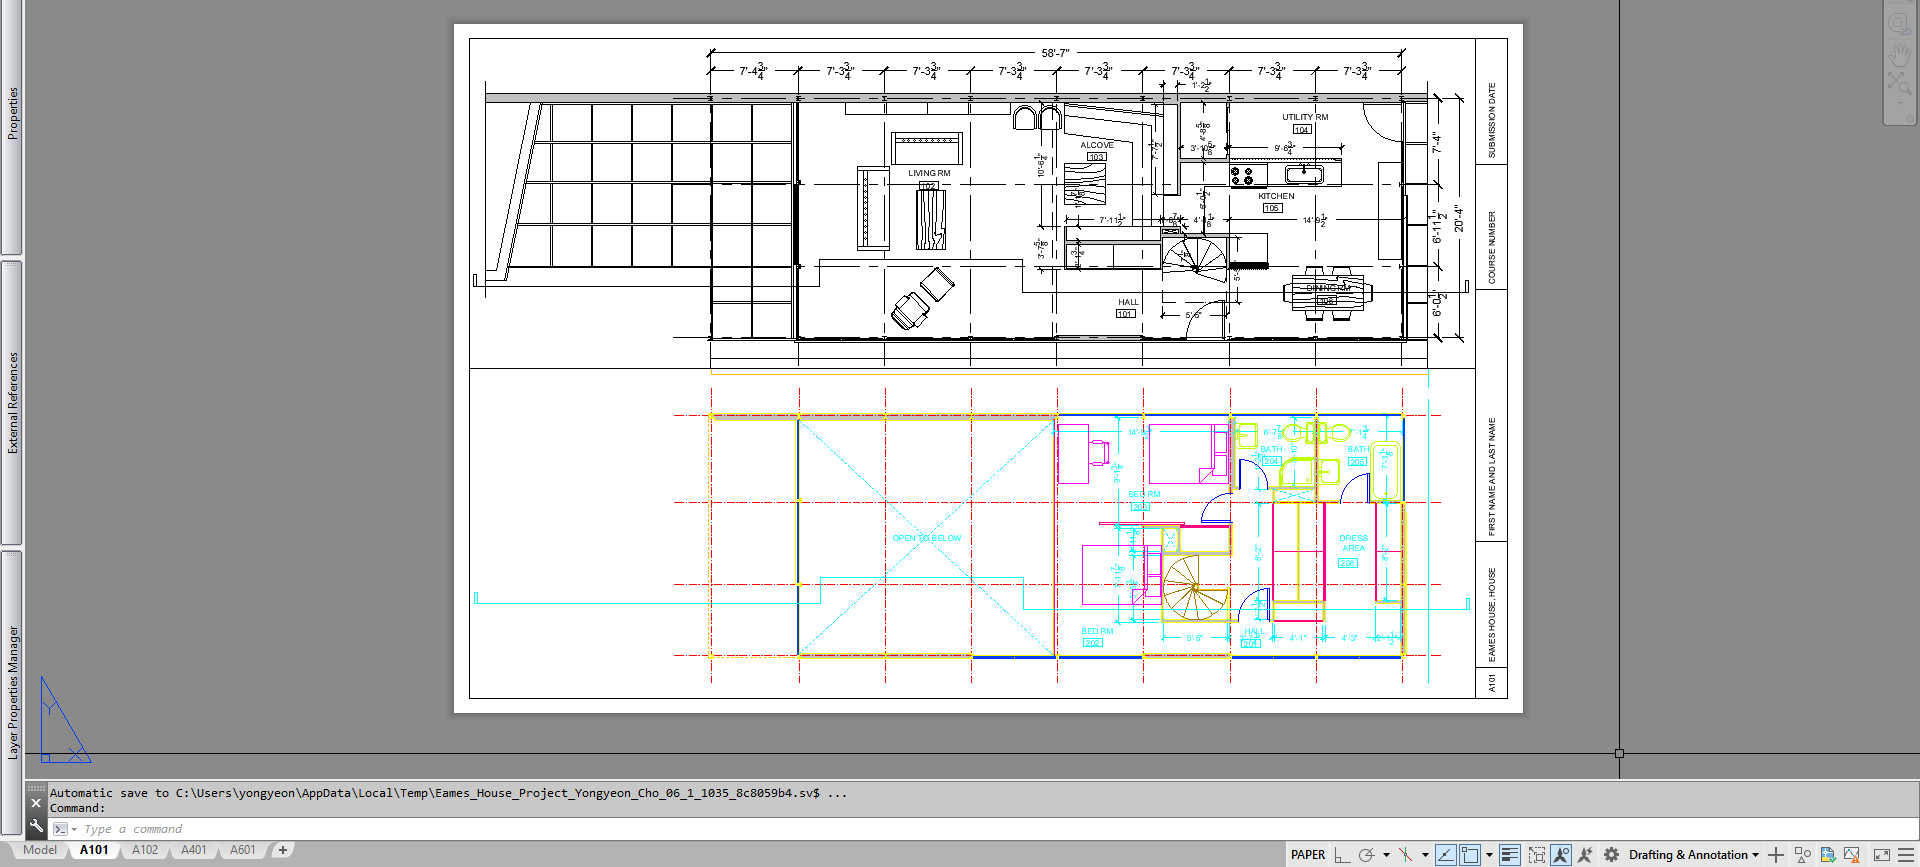 It shows the process image copying a view port.